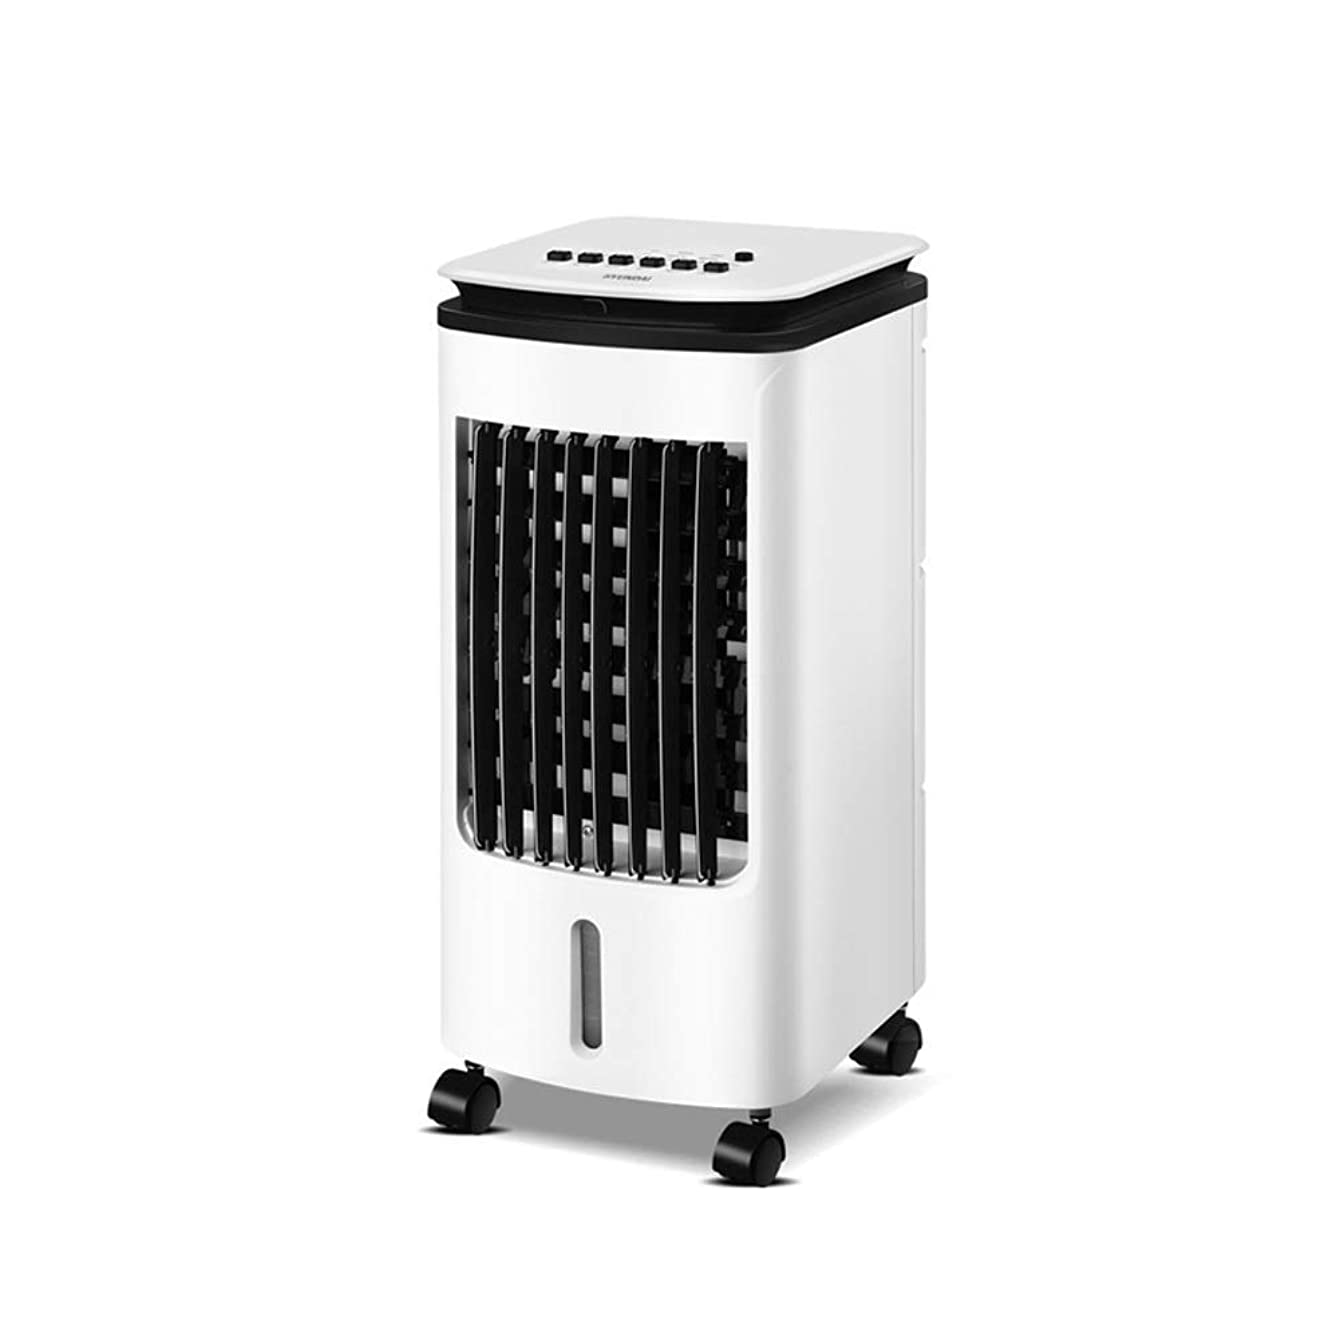 Xxyk Household air Cooler Evaporative Coolers Air Cooler Desktop Cooling Fan Intelligent Remote Control Three Wind Speeds Three Winds Setting Timer Function (Size : Remote Control)